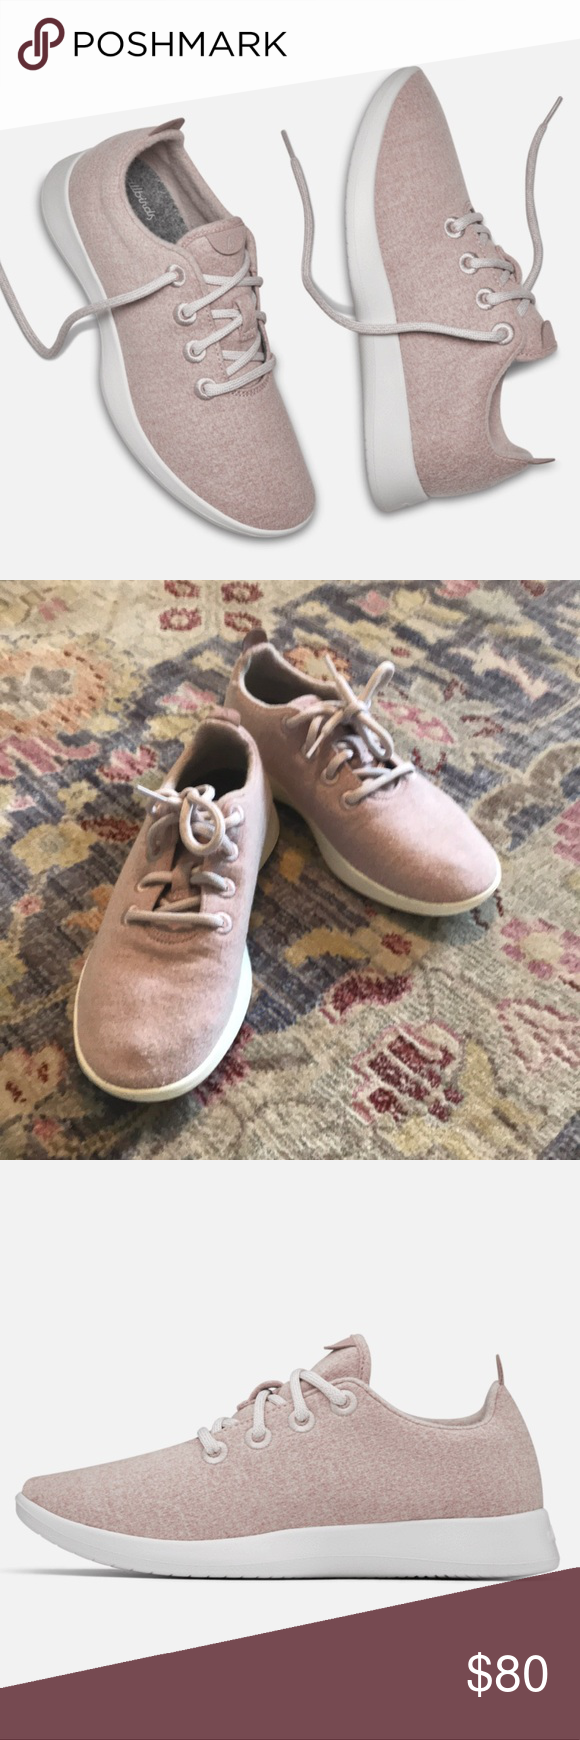 3602b83e971 Allbirds Wool Runner Limited Ed Tuke Dusk (pink) Women s Allbirds Runners size  7 in Limited Edition light pink. Gently used. Bought them a size too small  ...